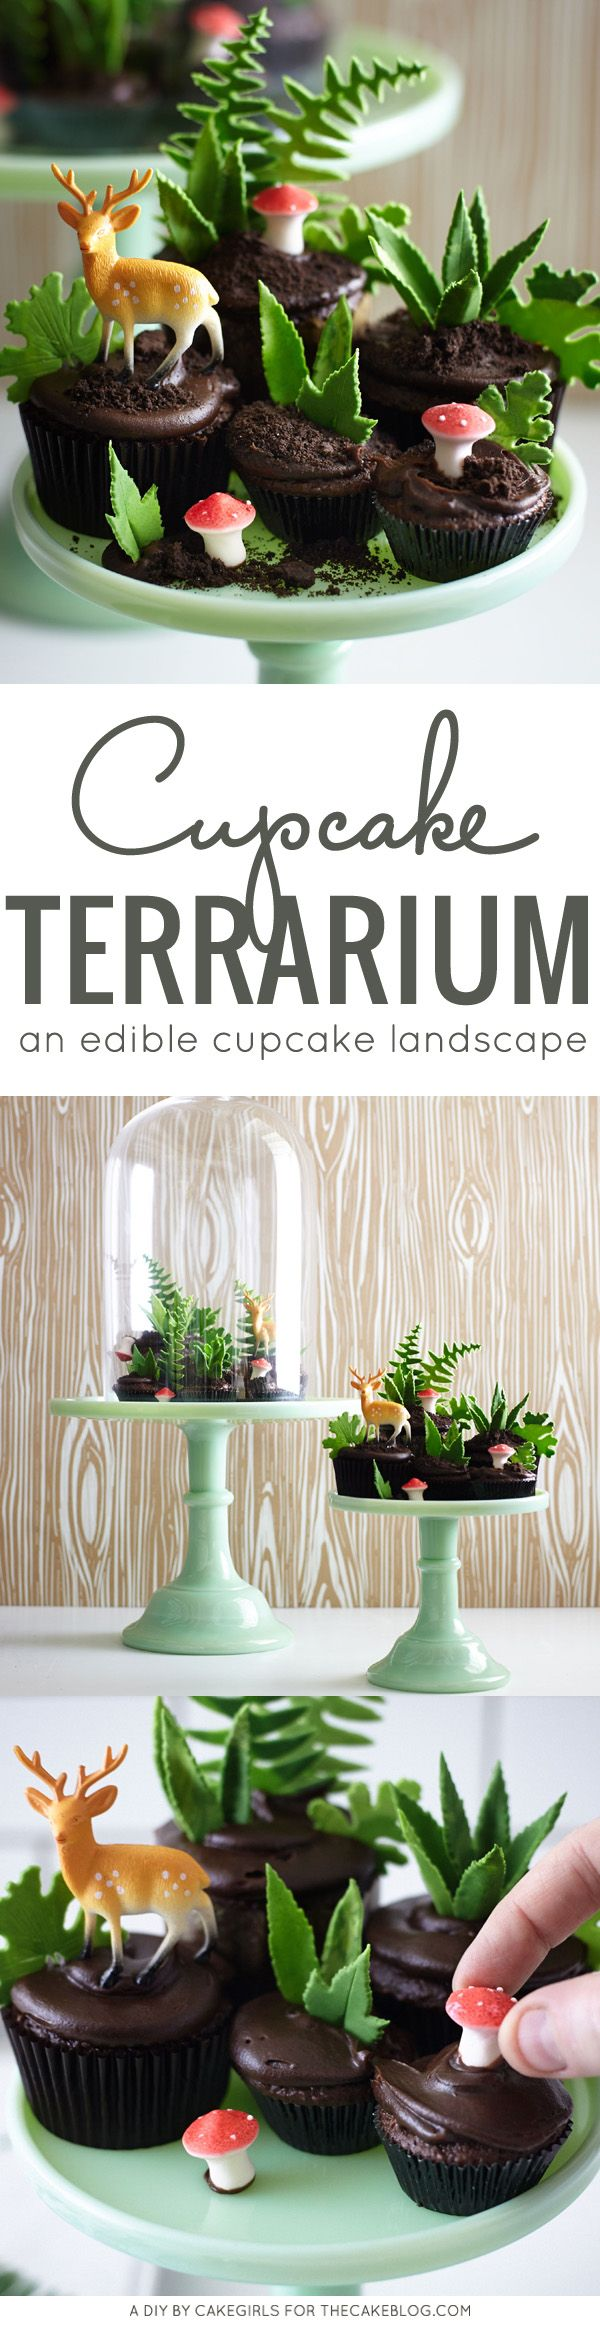 With a few smart shortcuts, this cupcake landscape looks impressive but is super easy to make! | DIY Cupcake Terrarium by Cakegirls for TheCakeBlog.com